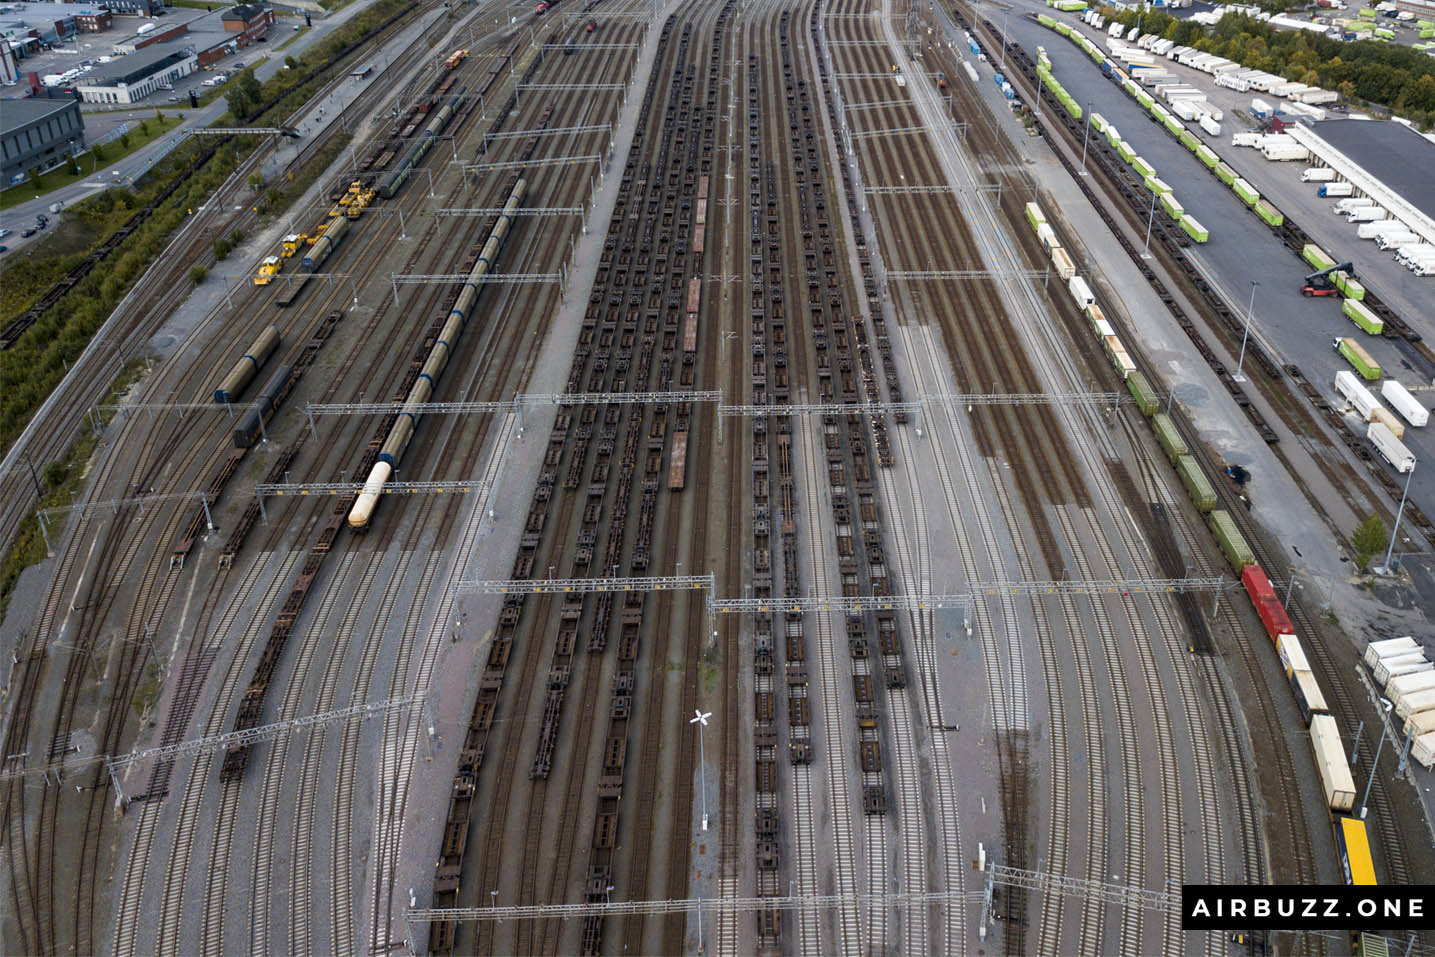 The parallel lines with train wagons looks great from above.